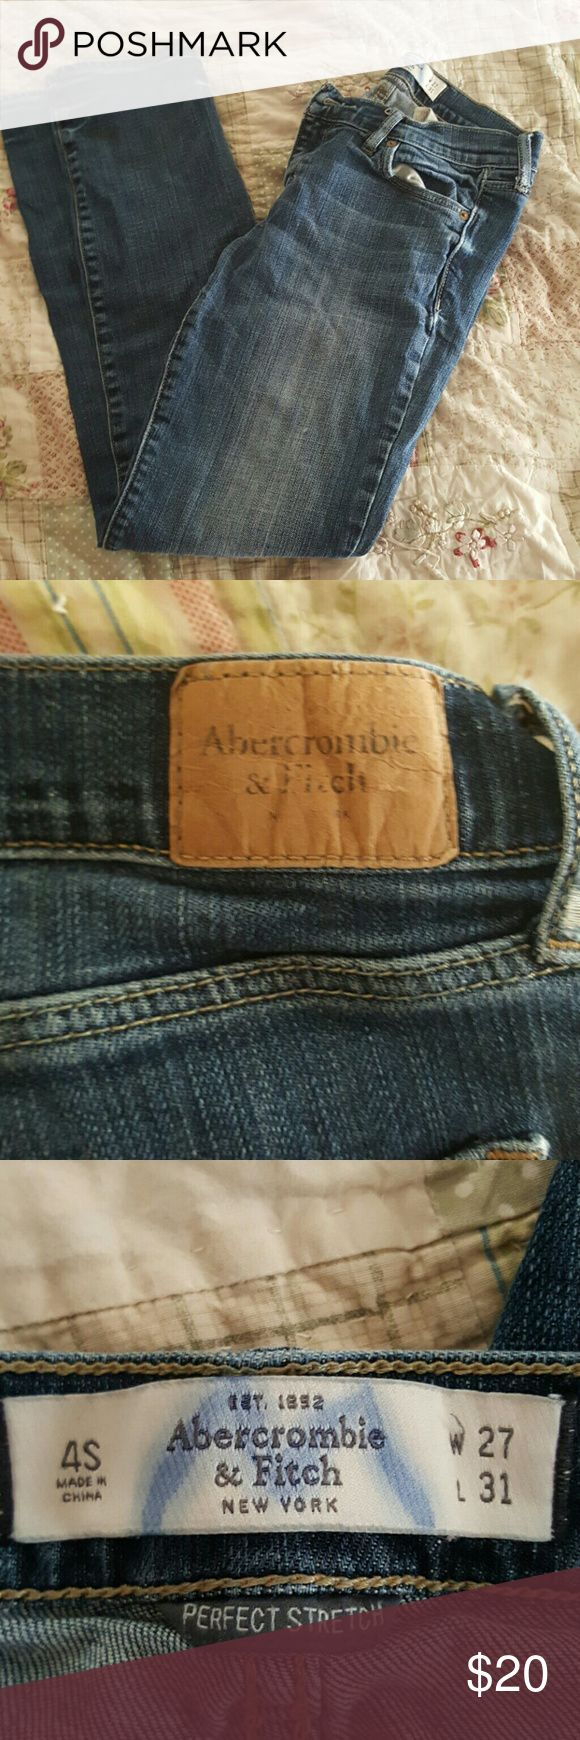 Jeans Perfect stretch Blue jeans. These were my pregnancy jeans. They no longer fit. Abercrombie & Fitch Jeans Straight Leg